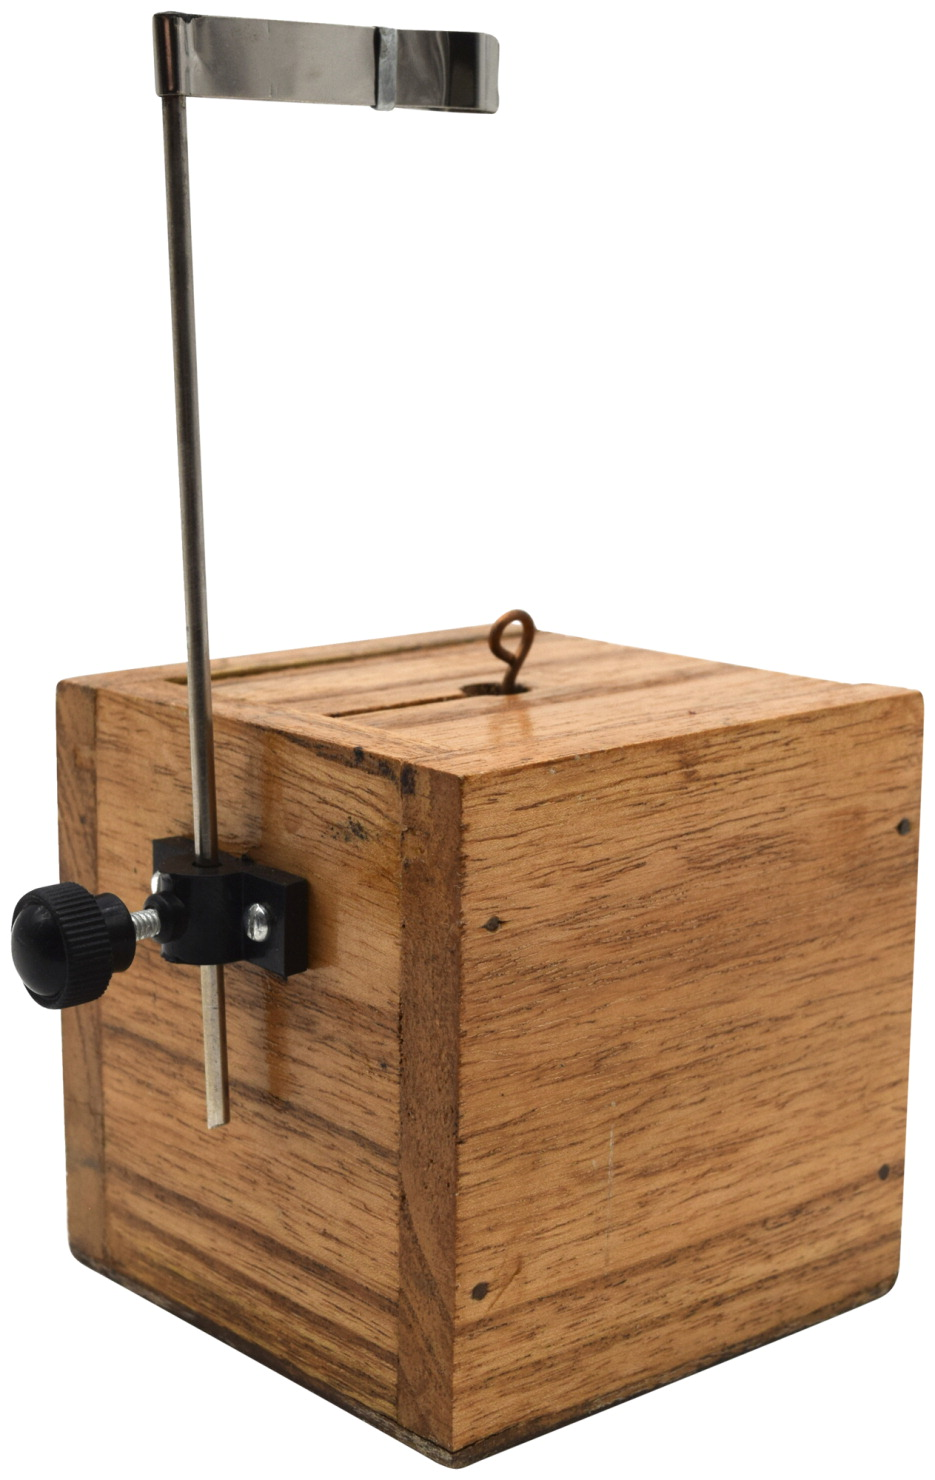 Eisco Labs Calorimeter with Wooden Box